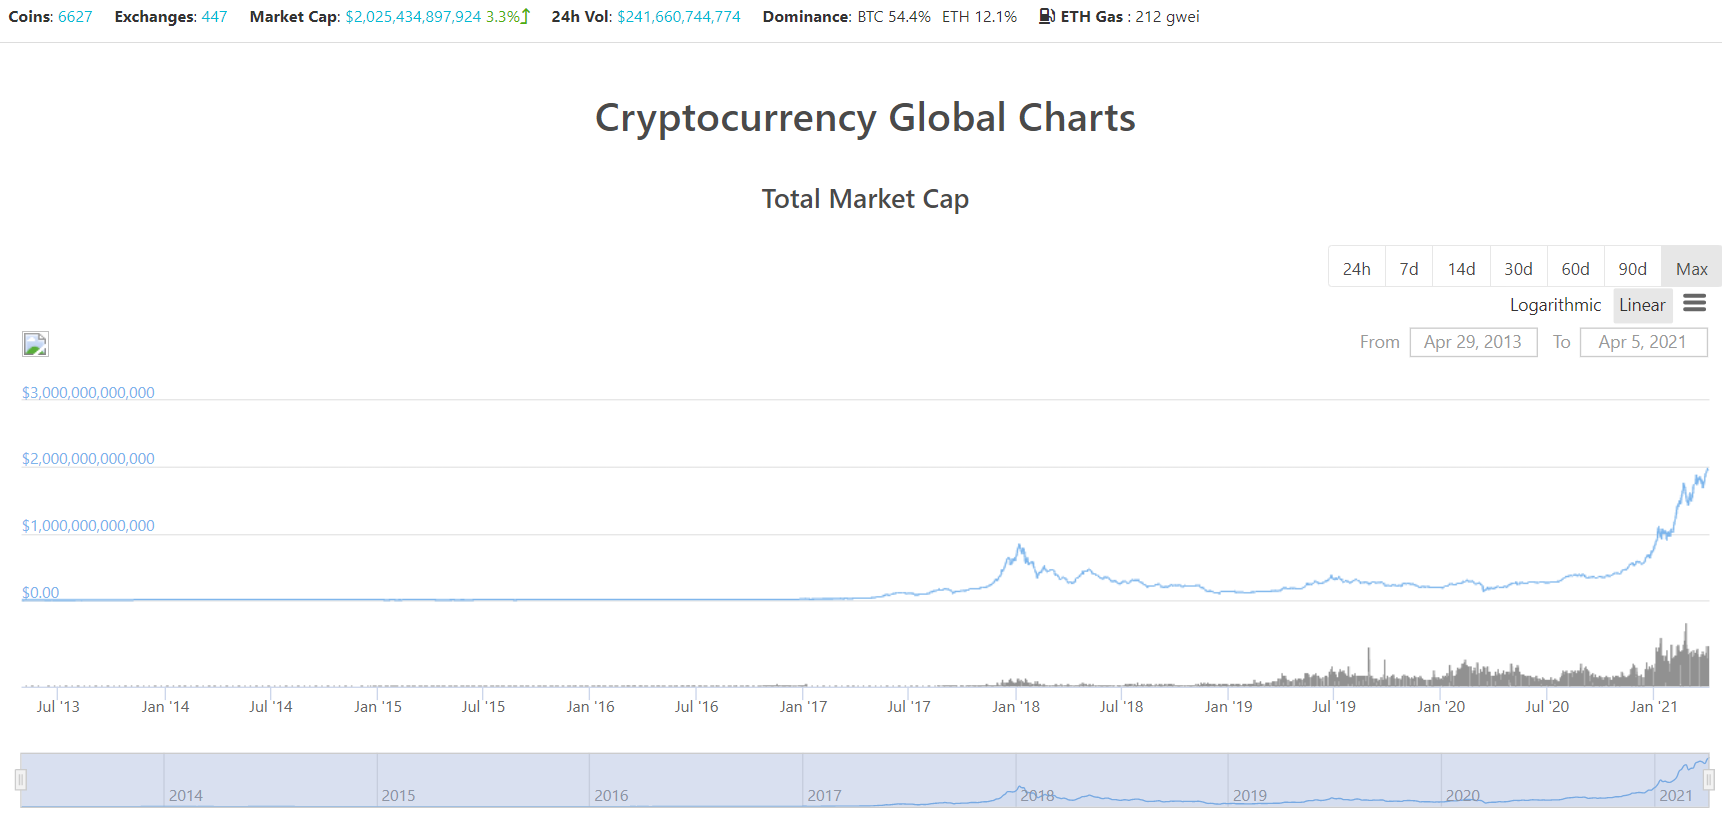 Crypto Total Market Cap Reaches $2 Trillion for the First Time